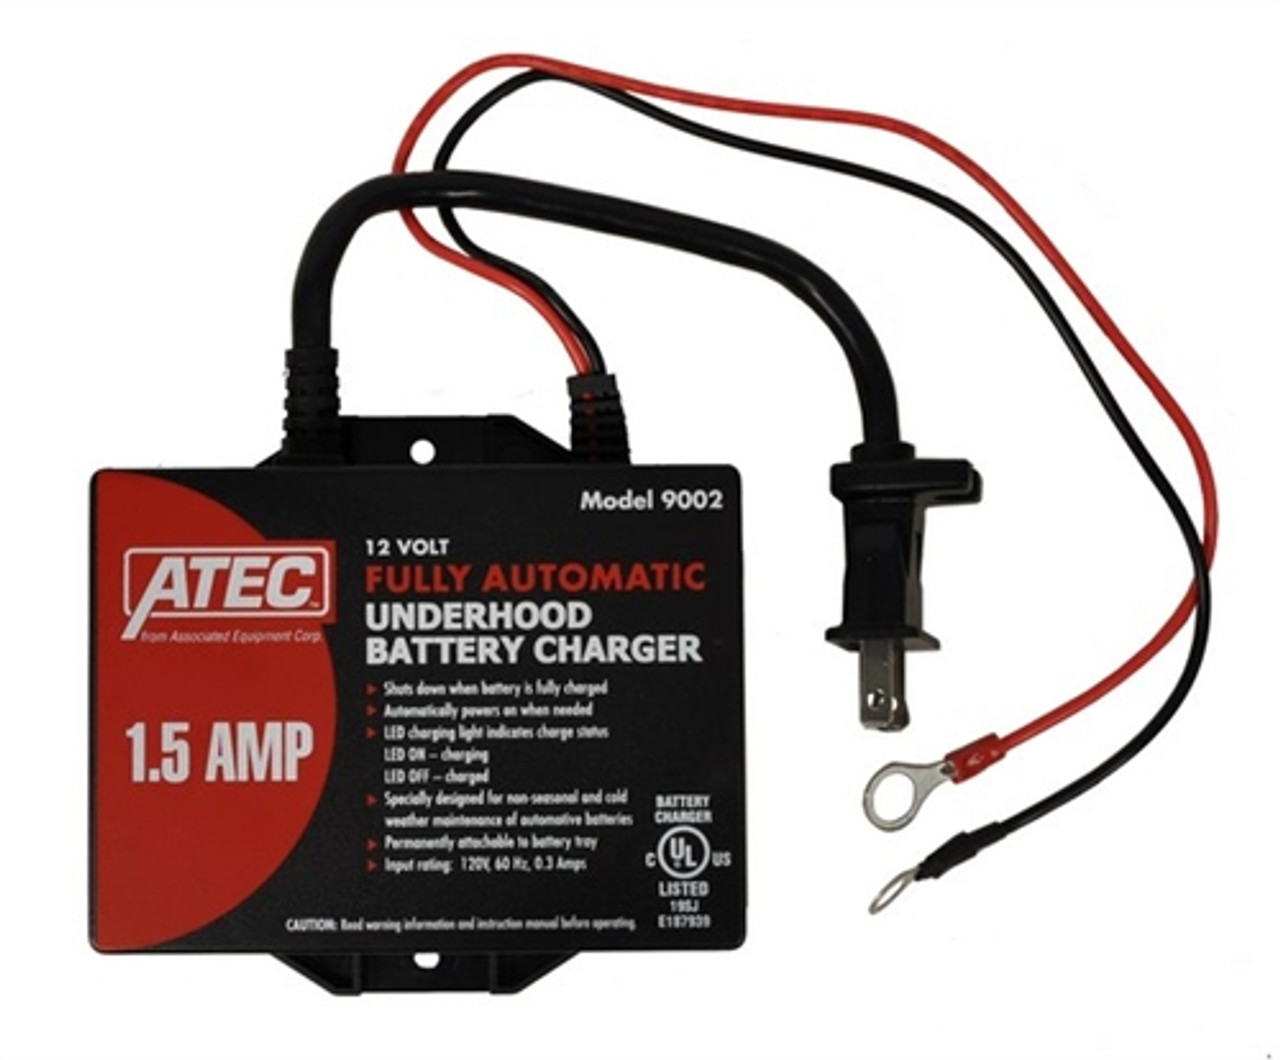 Model 9002 ATEC Fully Automatic 12 Volt 1.5 Amp Underhood-Battery Charger Powerful Performance